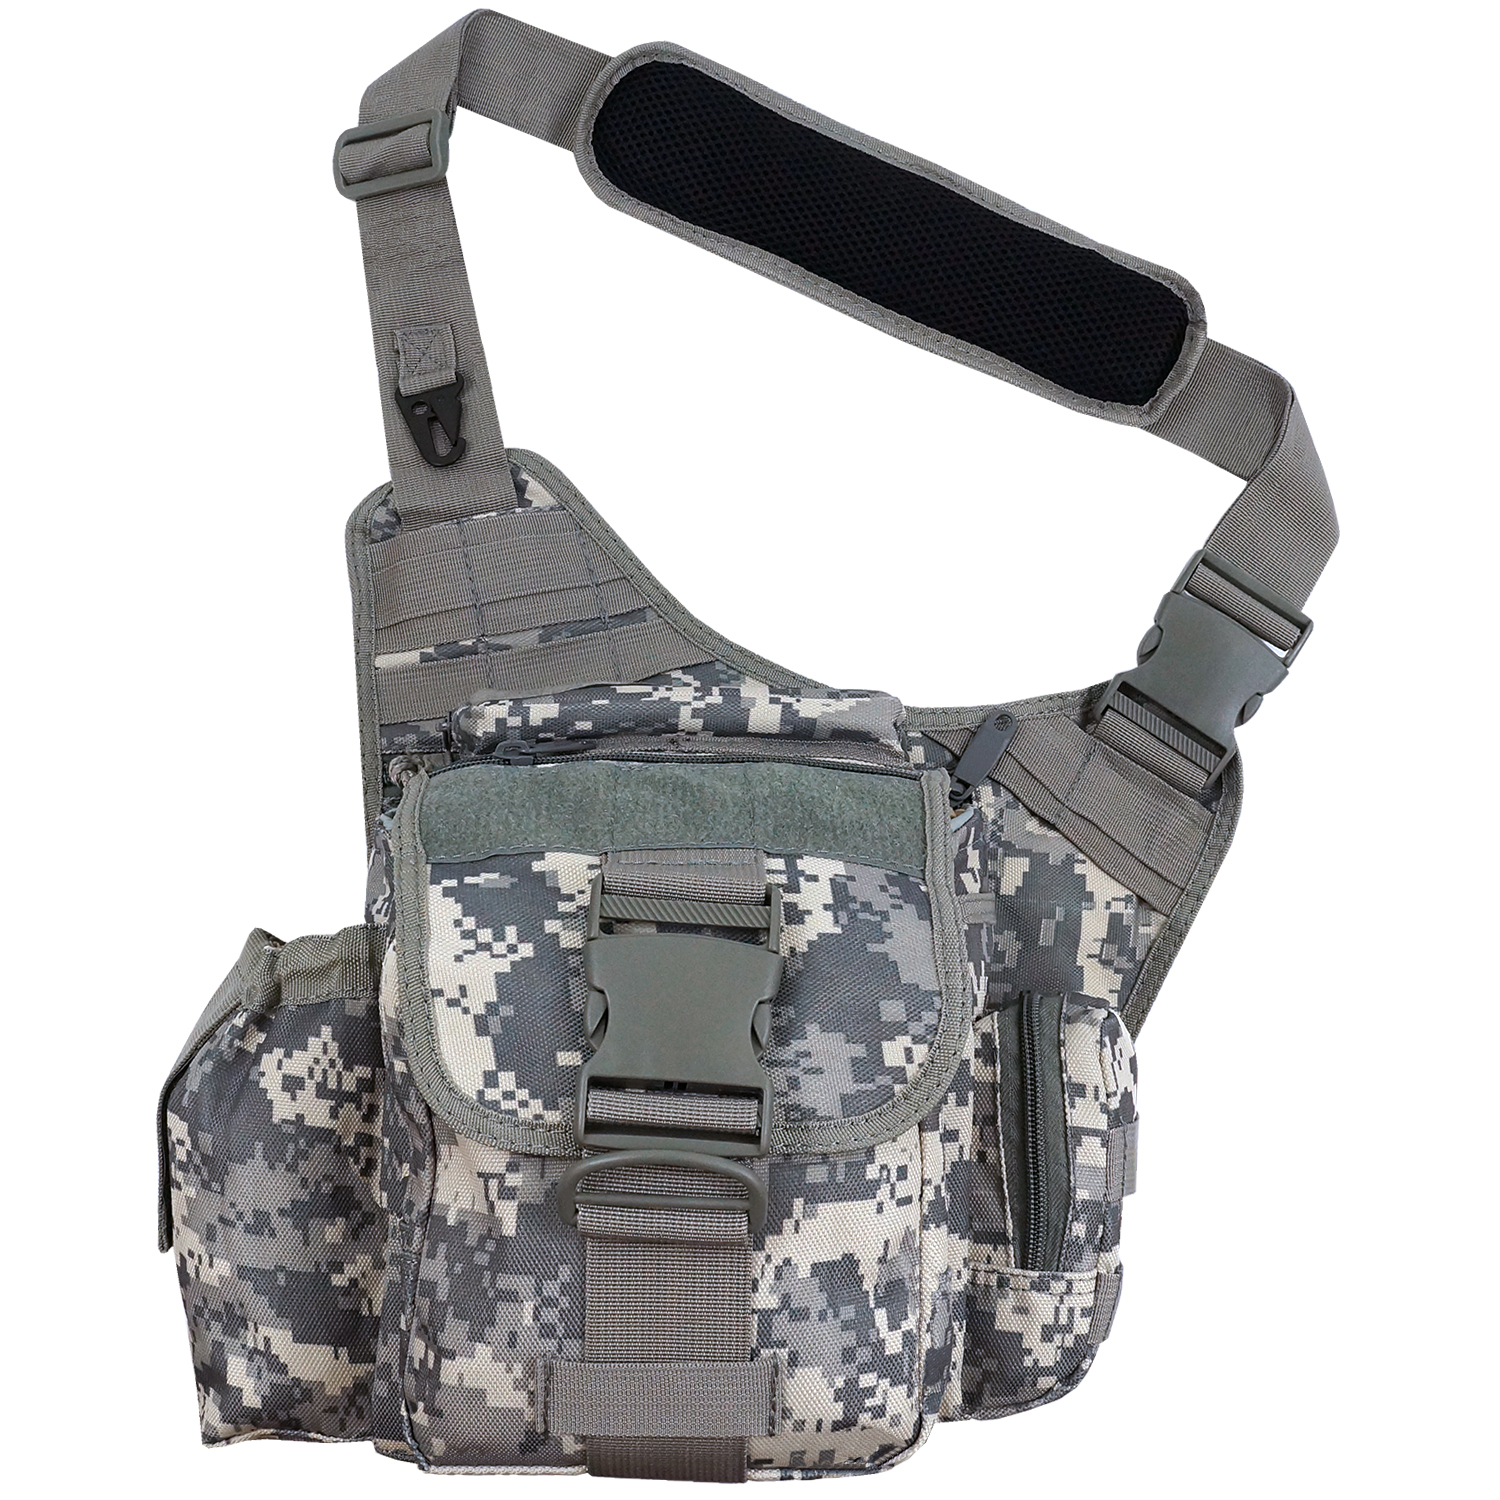 Every Day Carry Tactical Messenger Side Sling Shoulder Bag w/Pistol Pocket - ACU